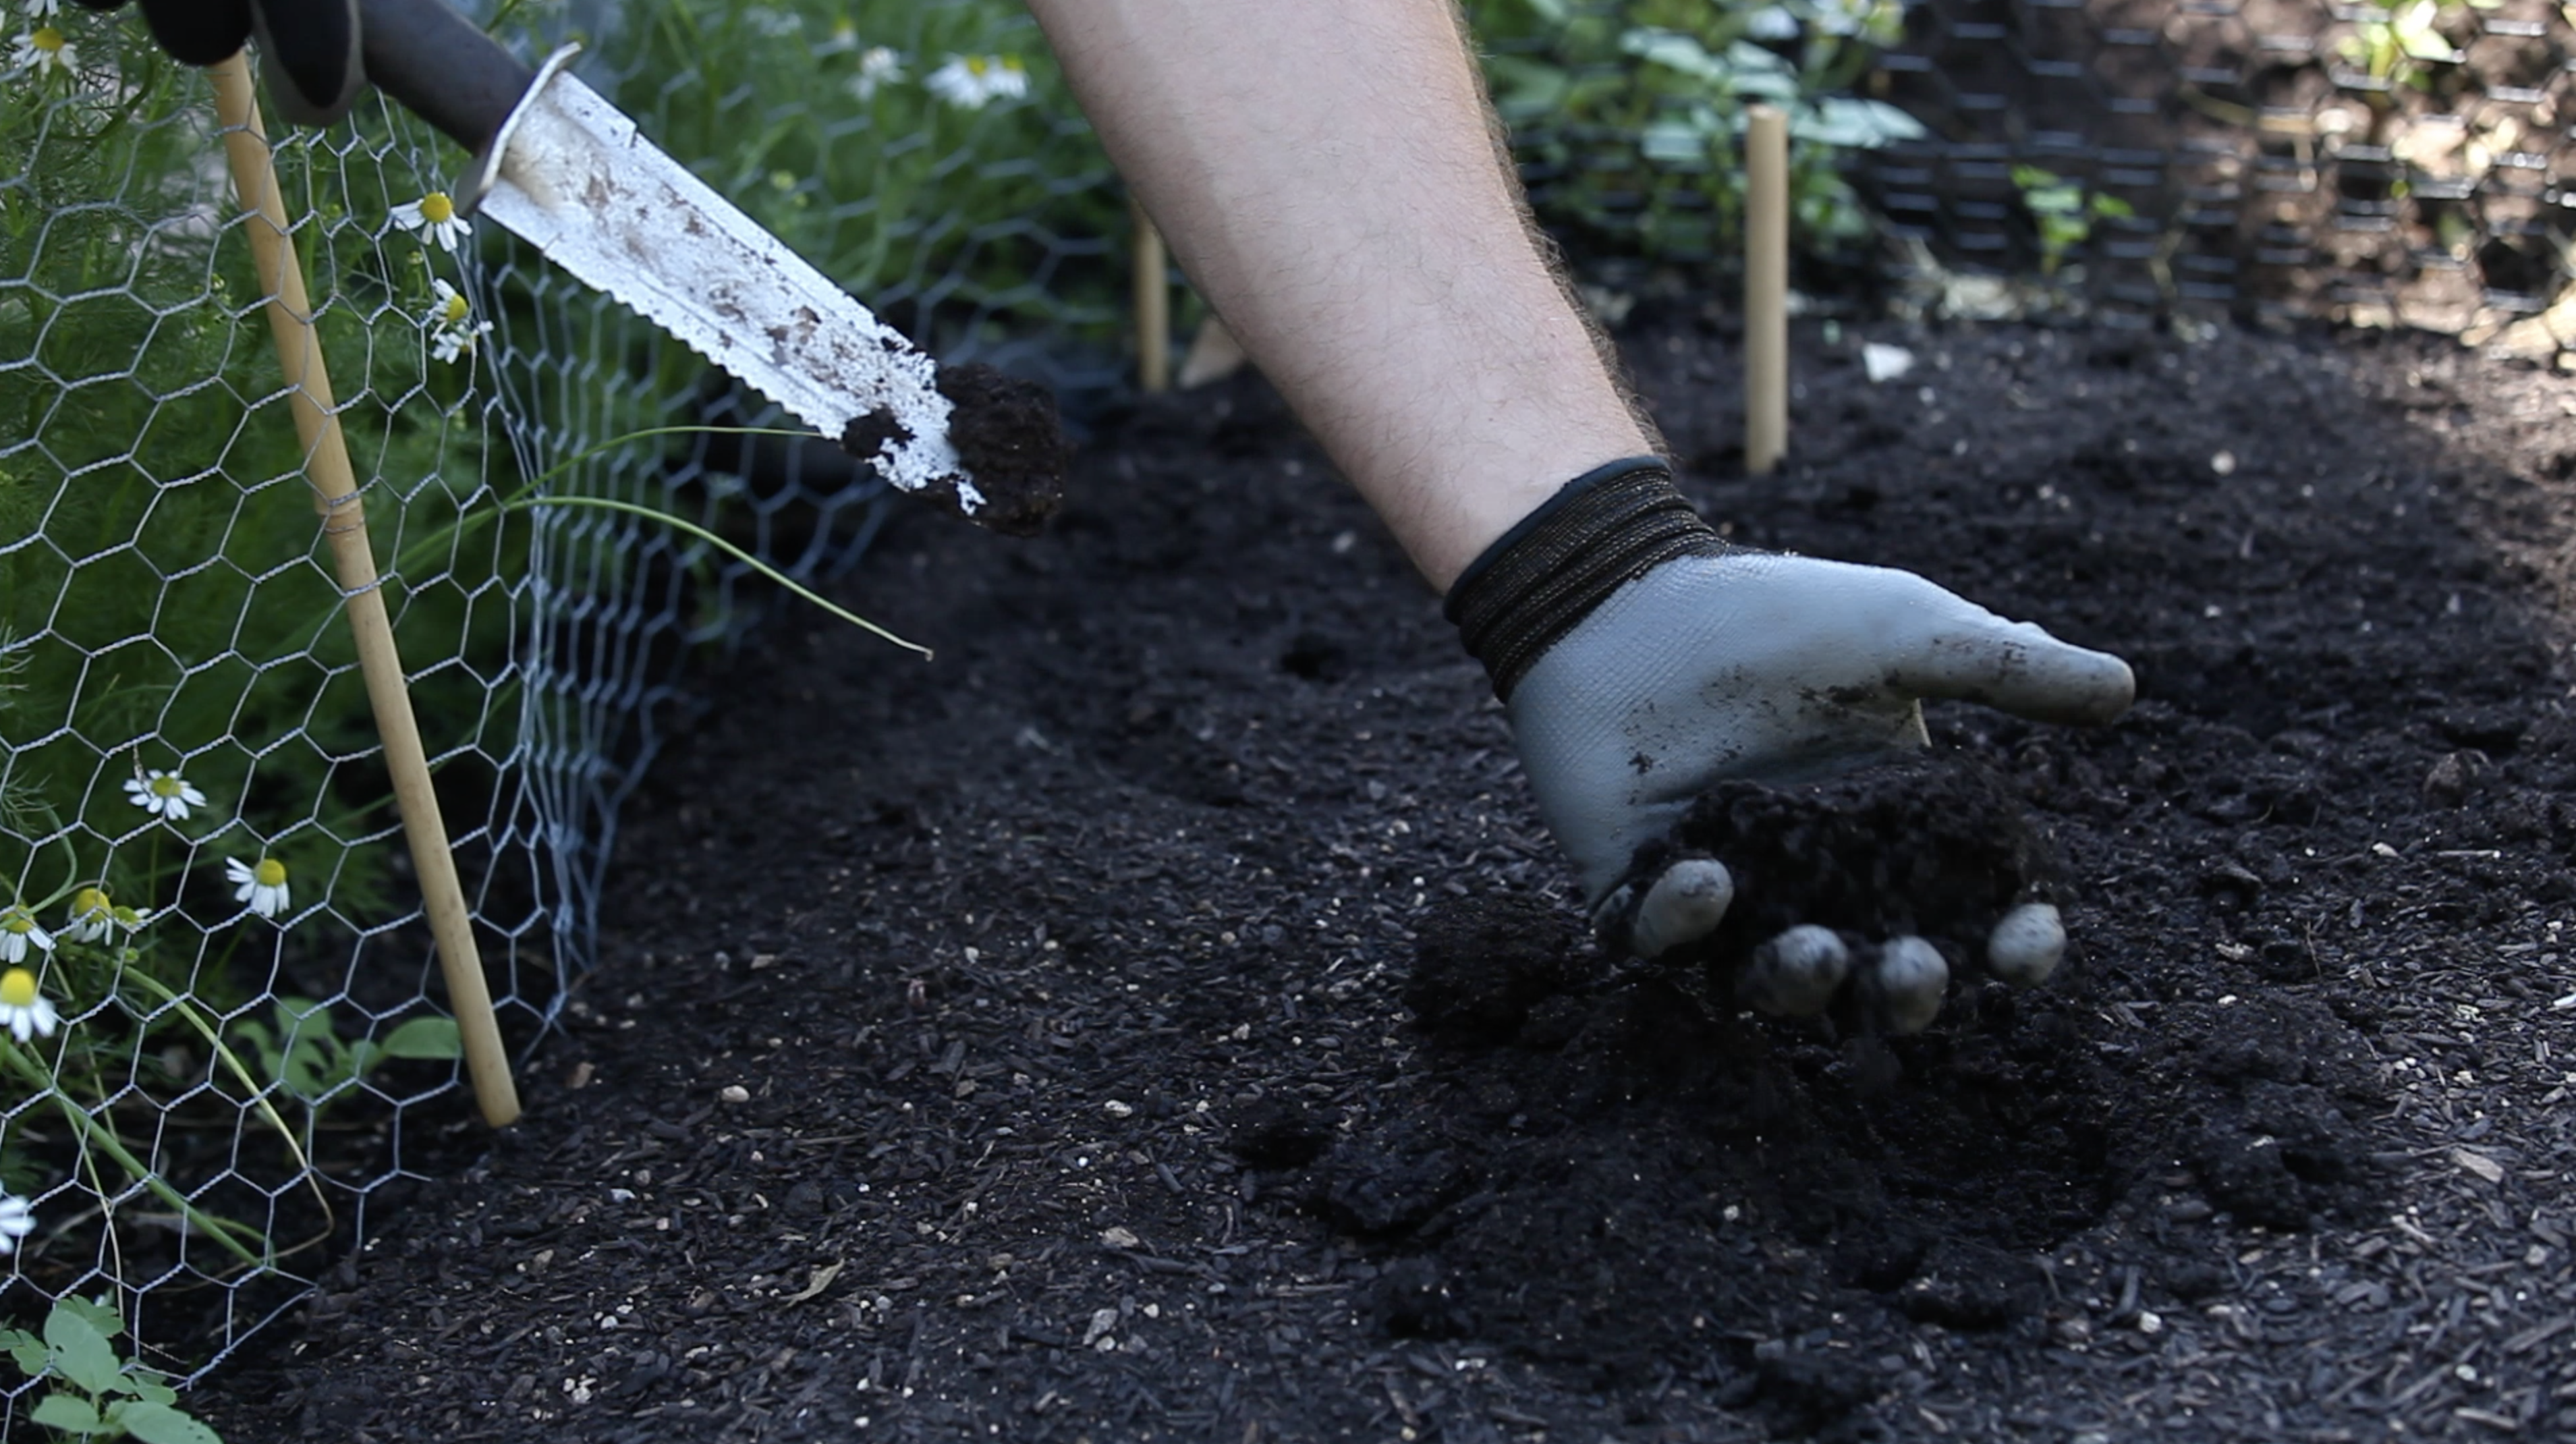 hand with glove holding soil scooped out from a garden bed